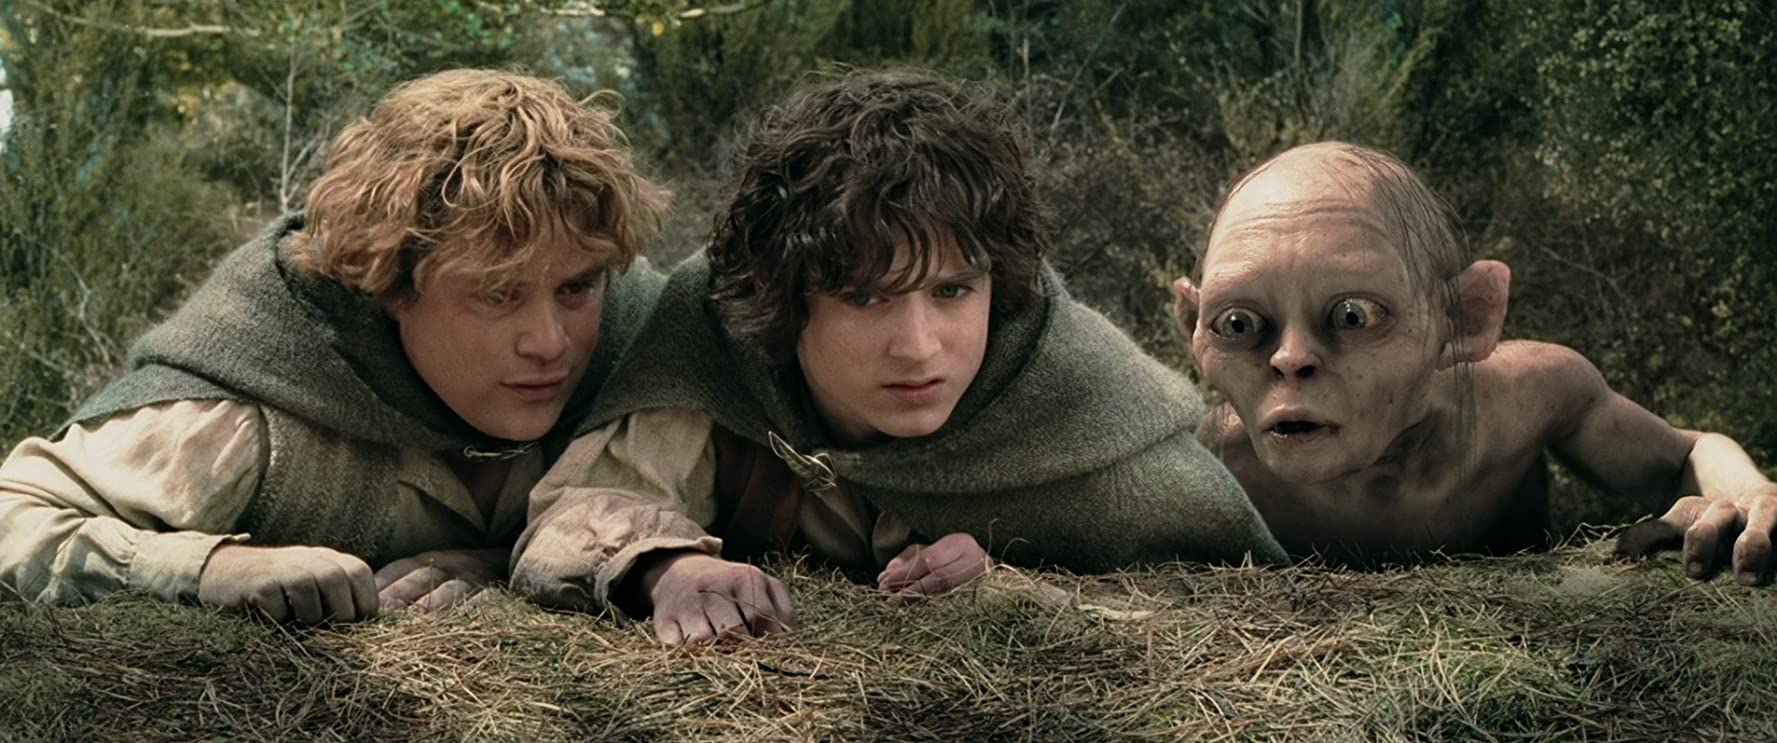 Sean Astin, Elijah Wood, and Andy Serkis in The Lord of the Rings: The Two Towers (2002)